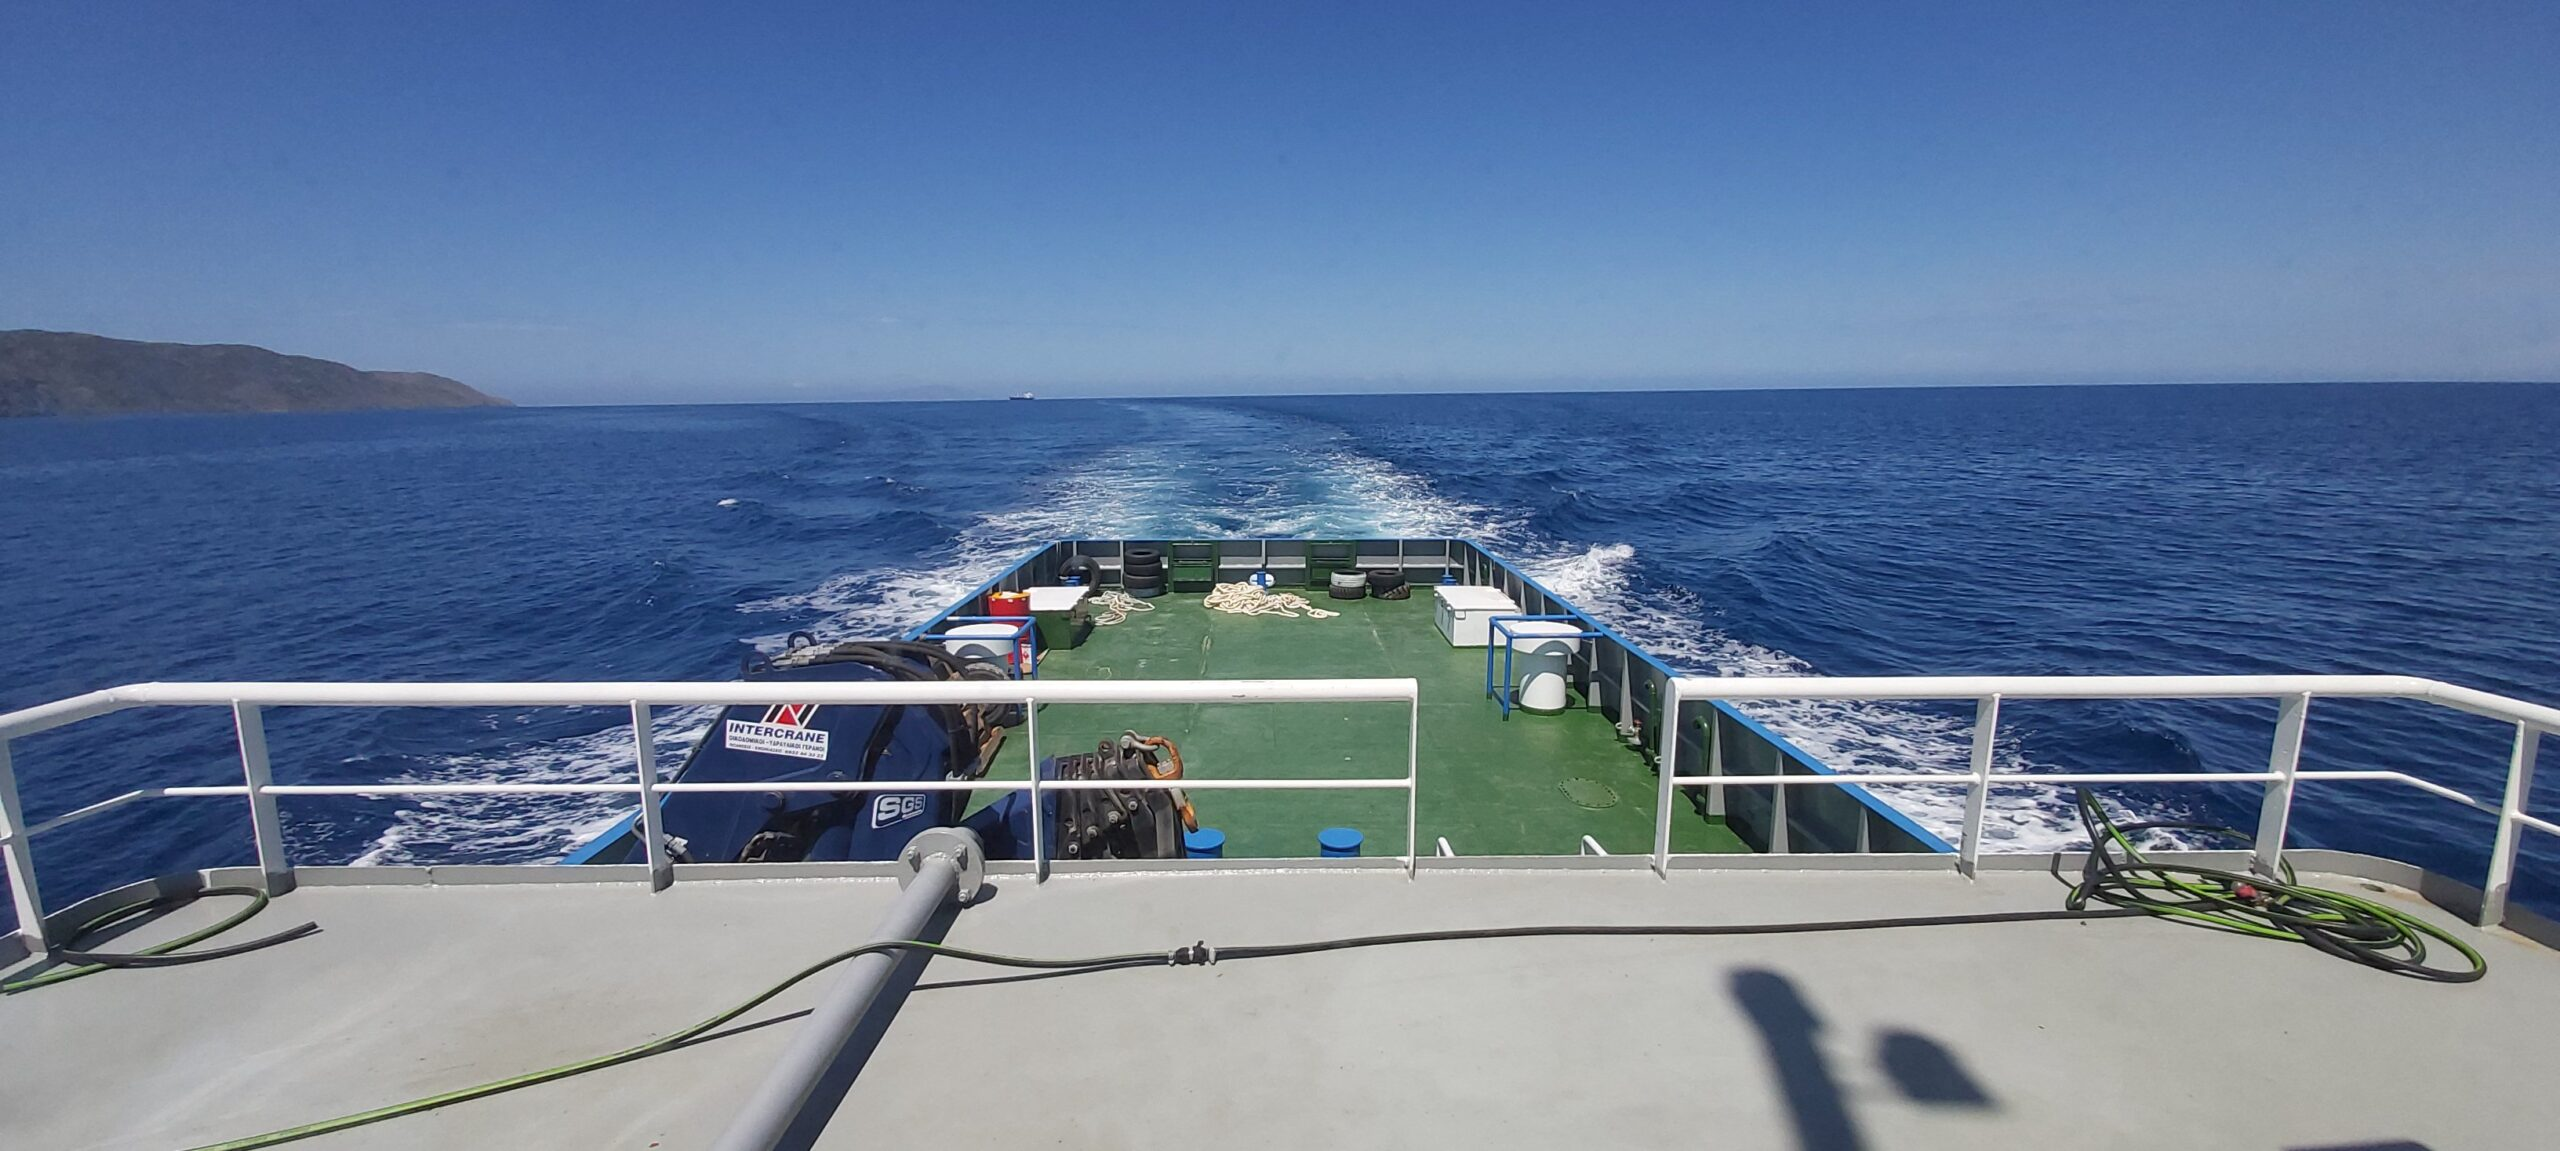 chios transit sea services ships 12